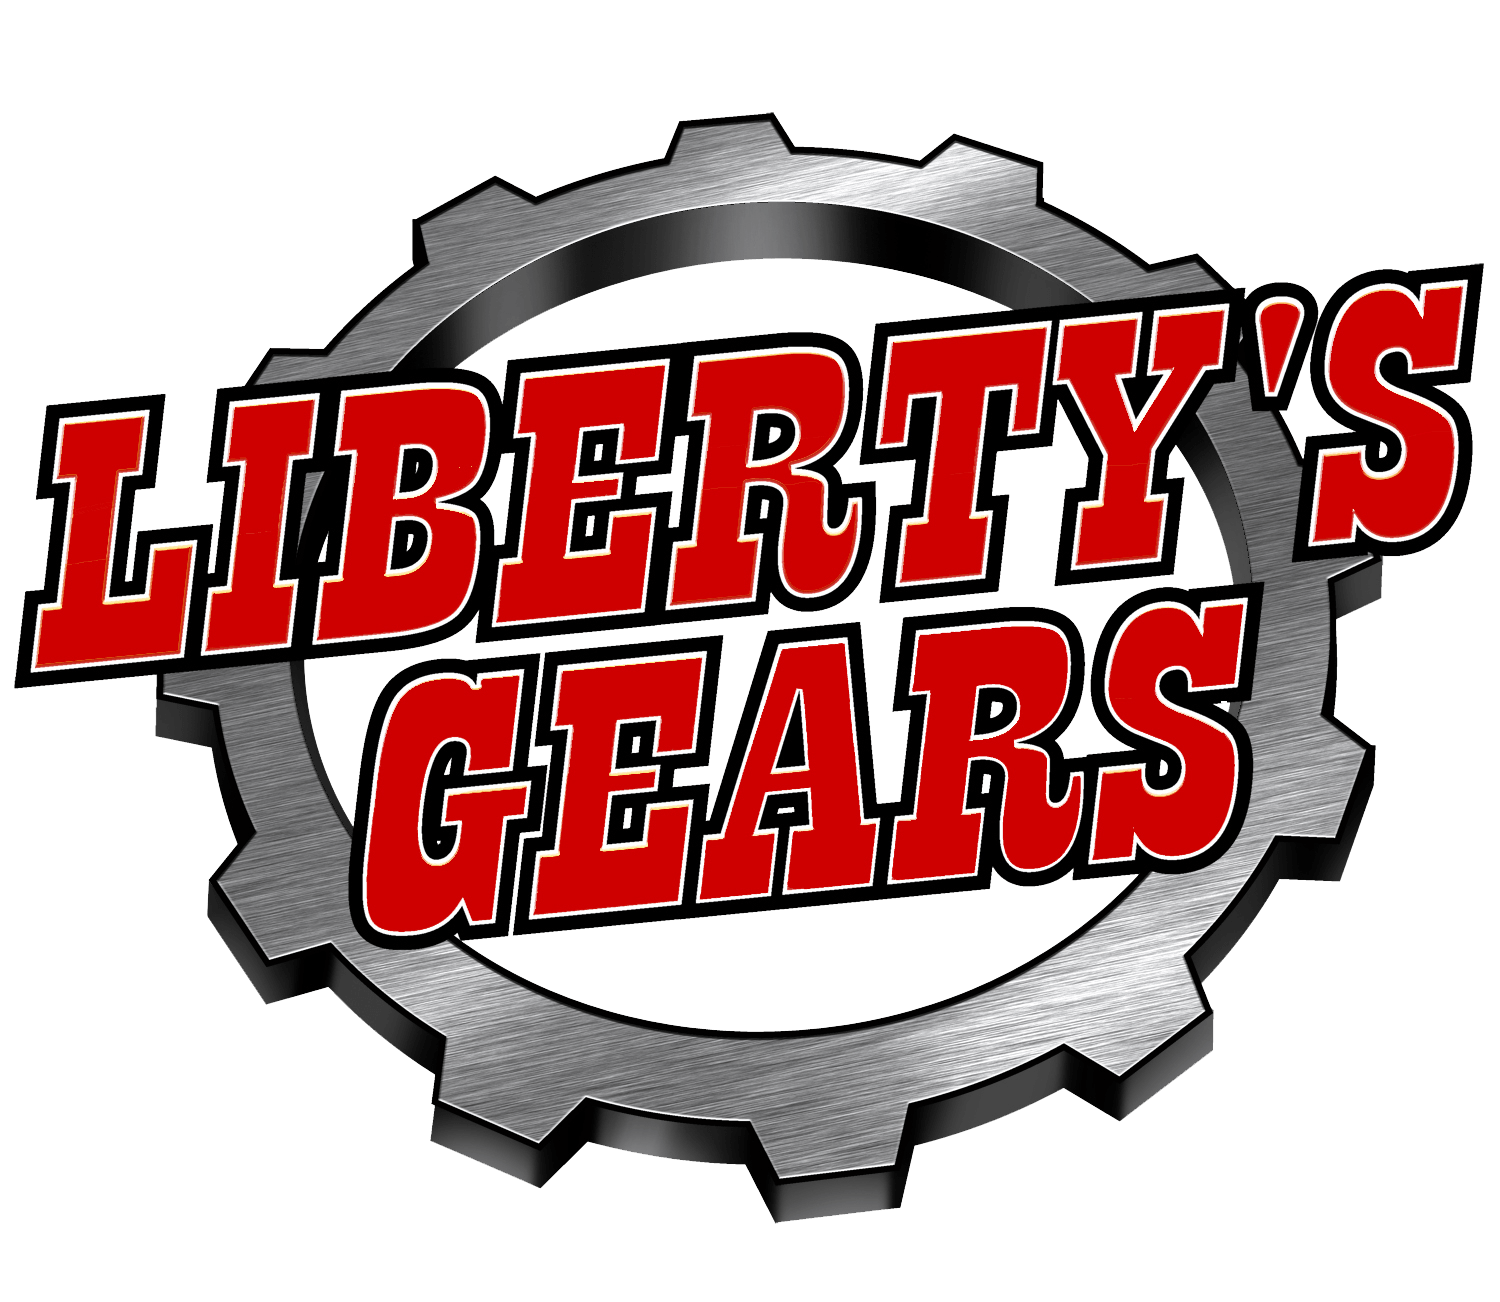 Clutchless Transmission | Liberty's Gears